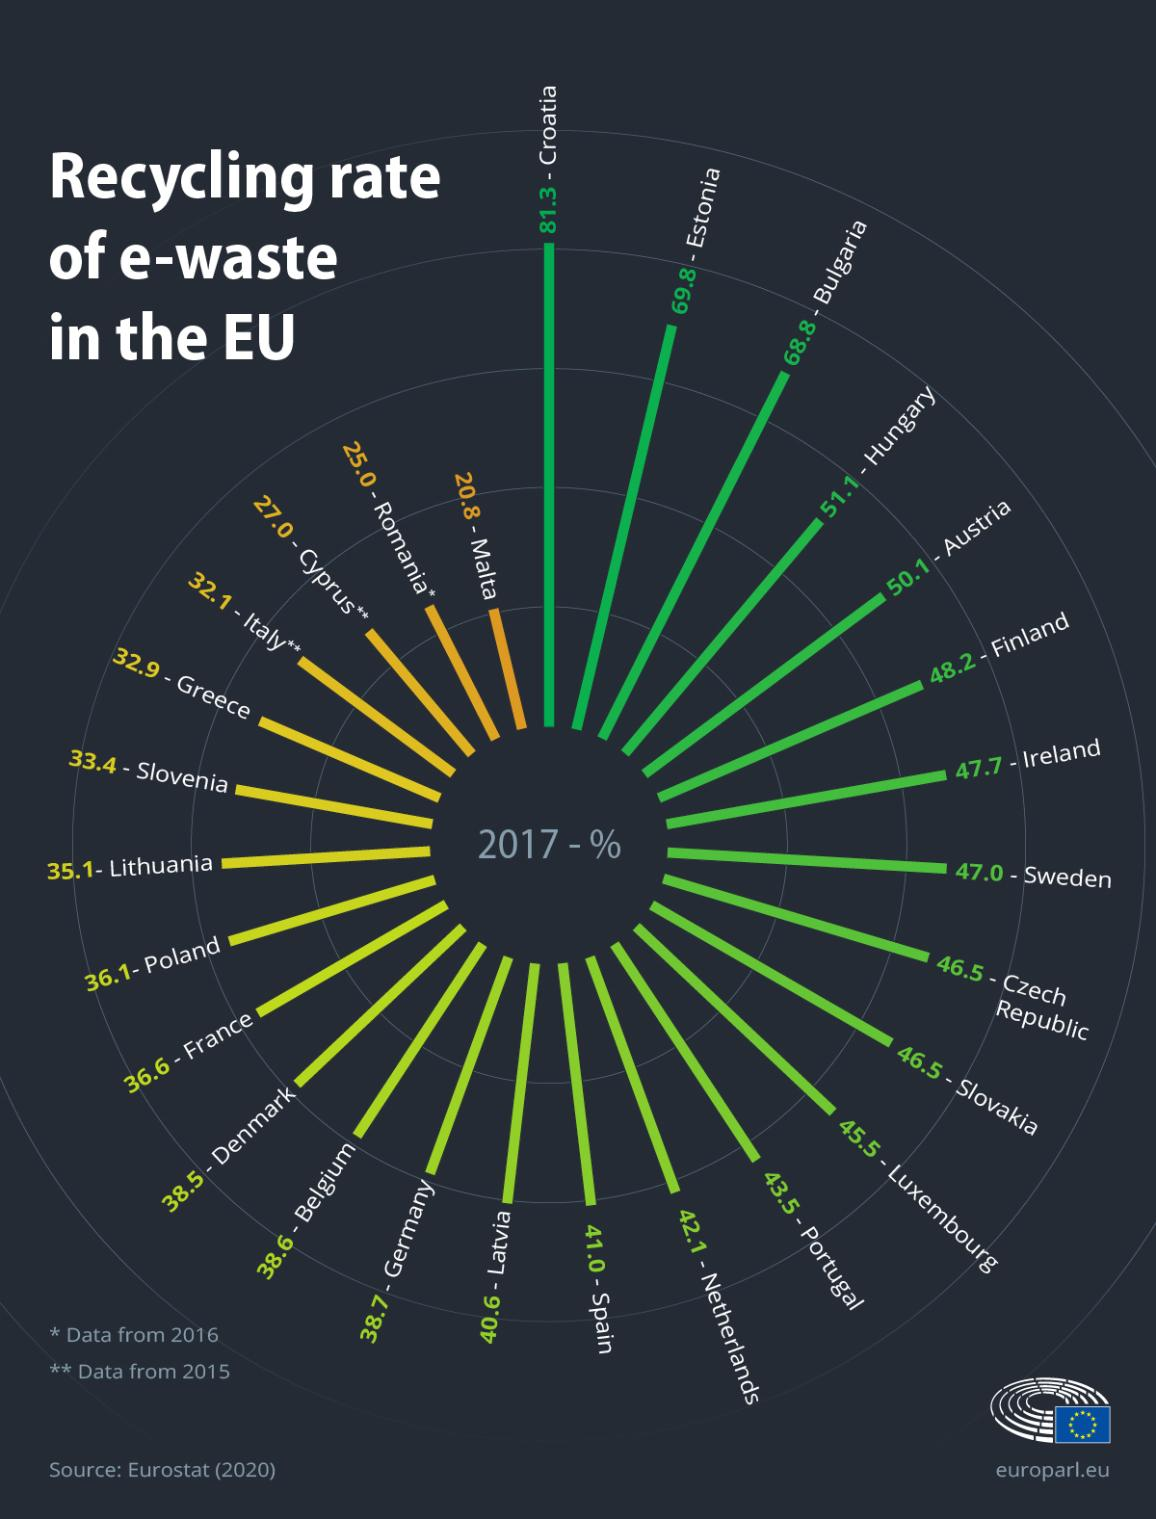 Infographic on the recycling rate of e-waste in the EU